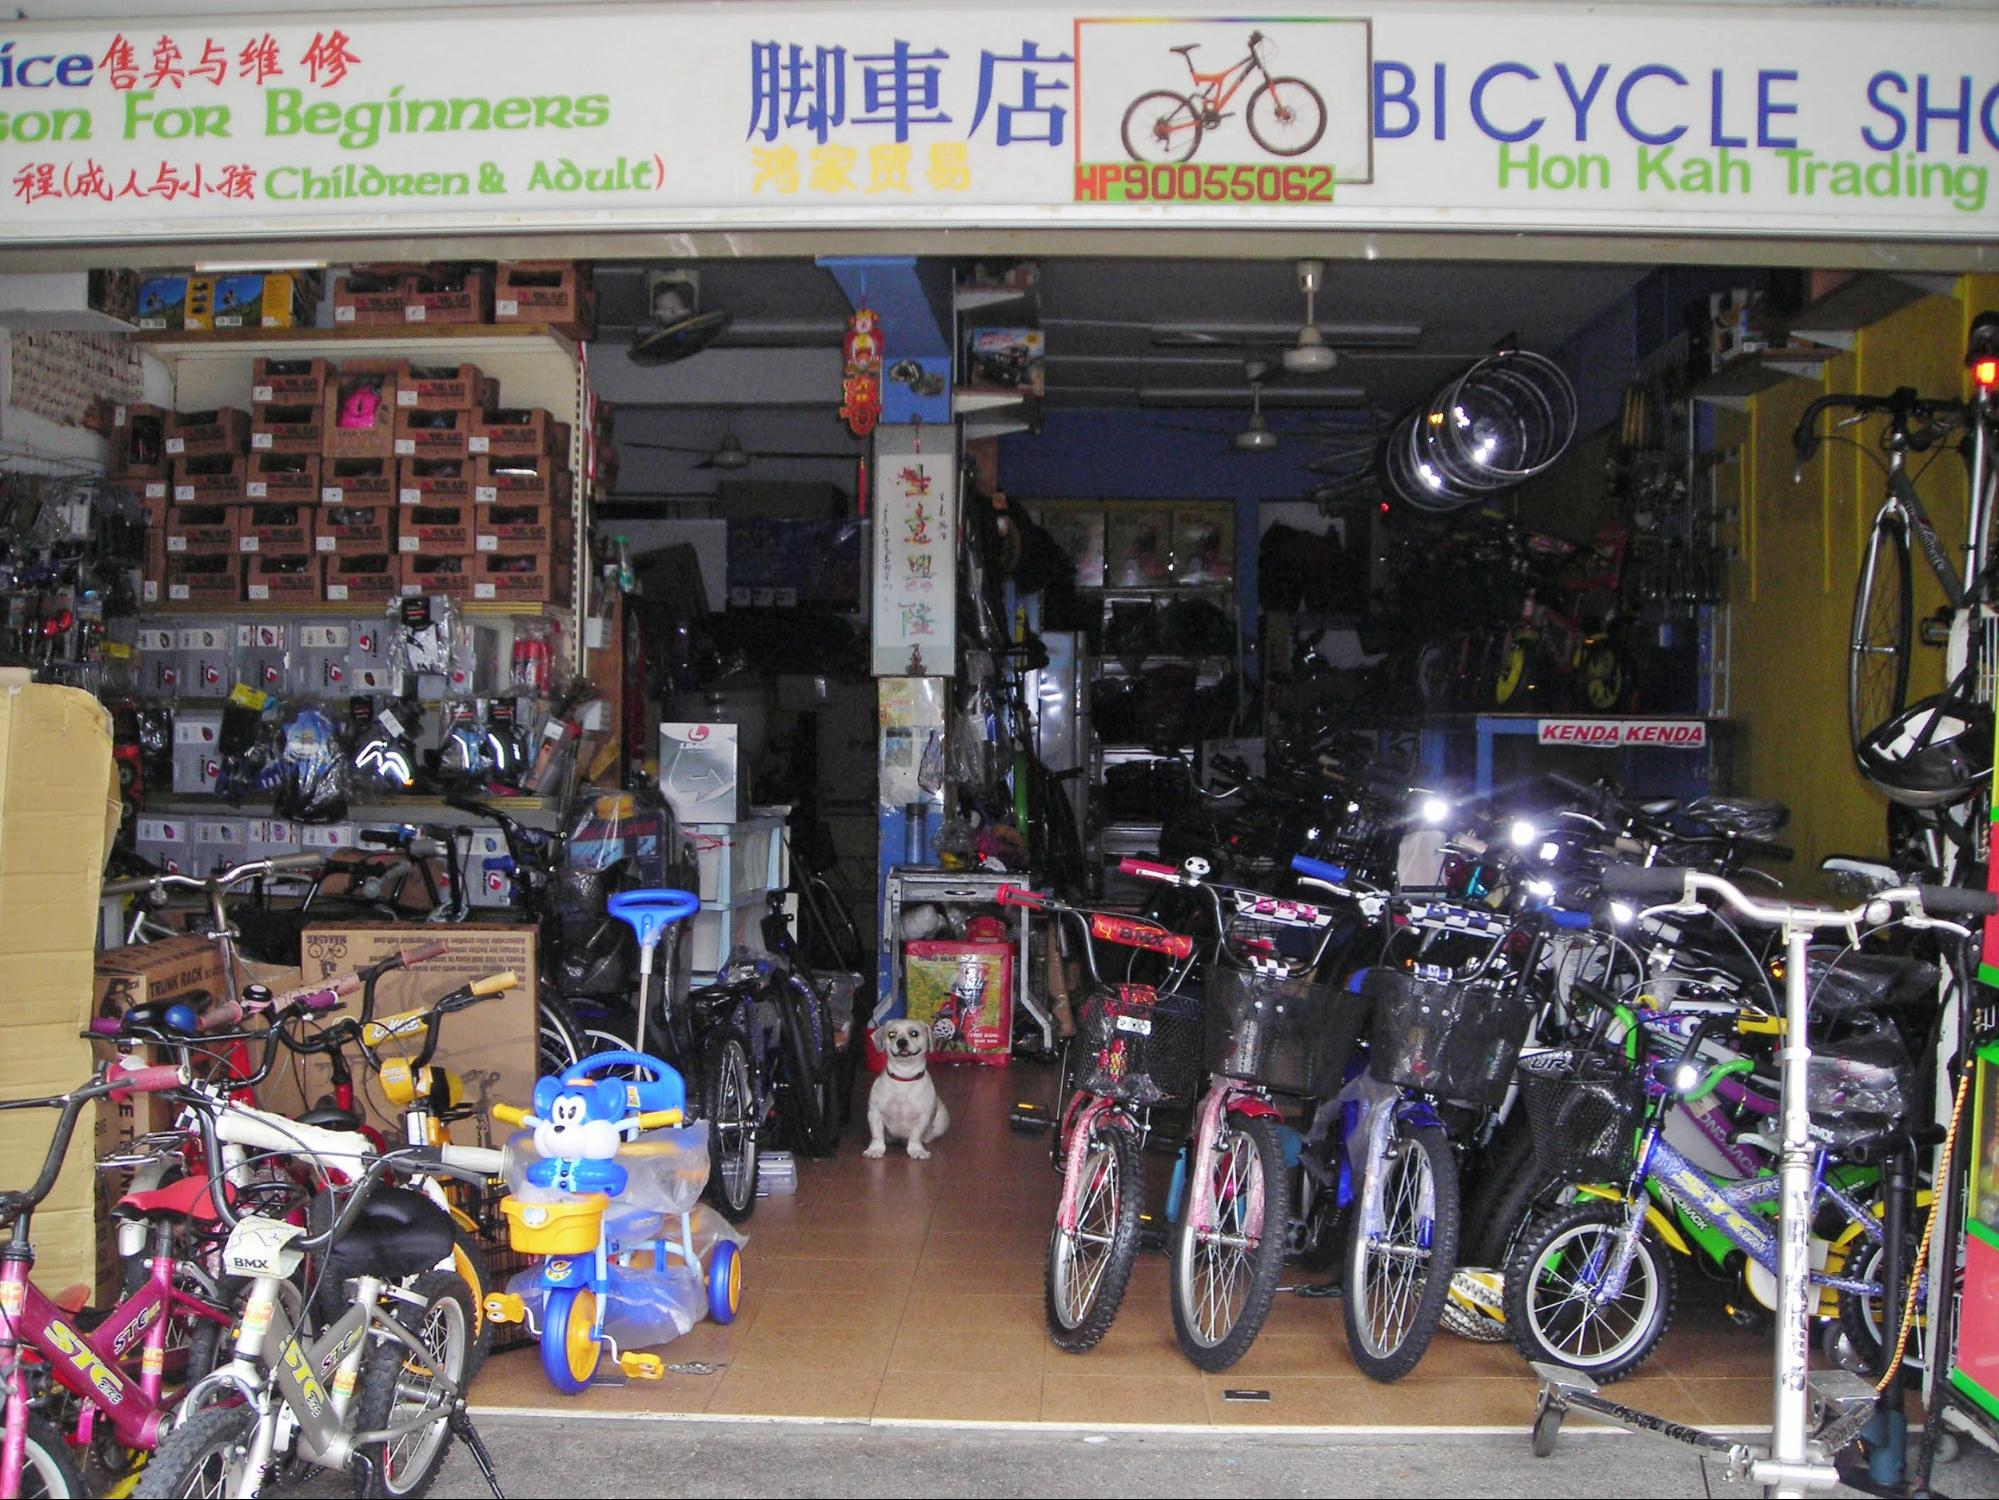 hon kah trading bike shop front